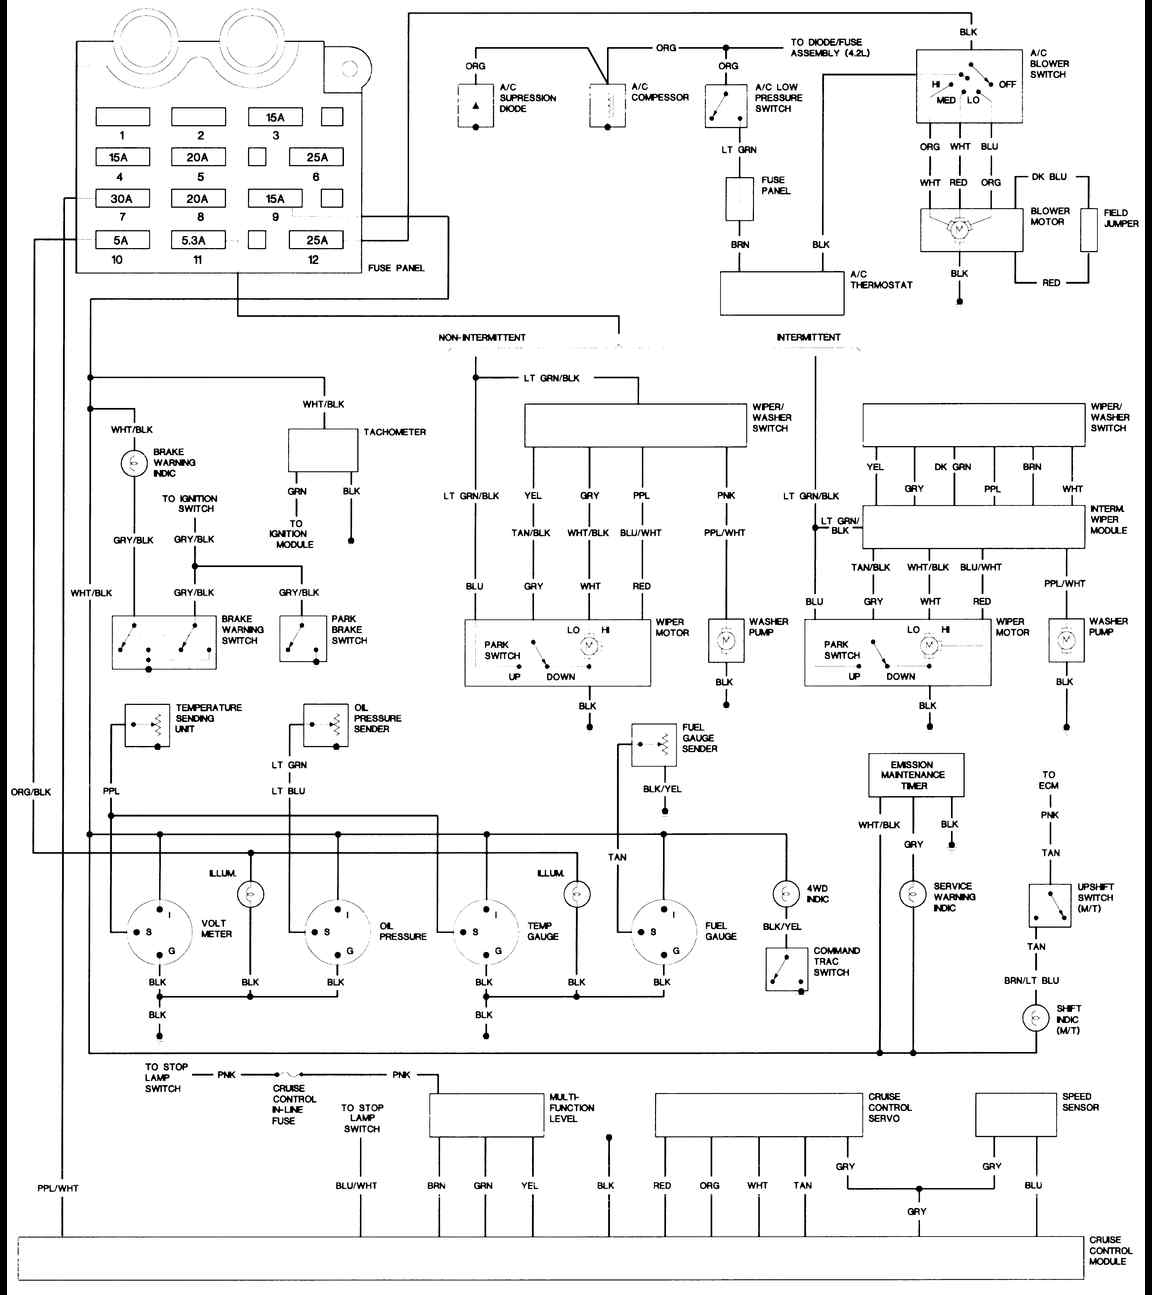 KB_9030] Addition 2000 Jeep Wrangler Wiring Diagram In Addition Jeep  Wrangler Download Diagram